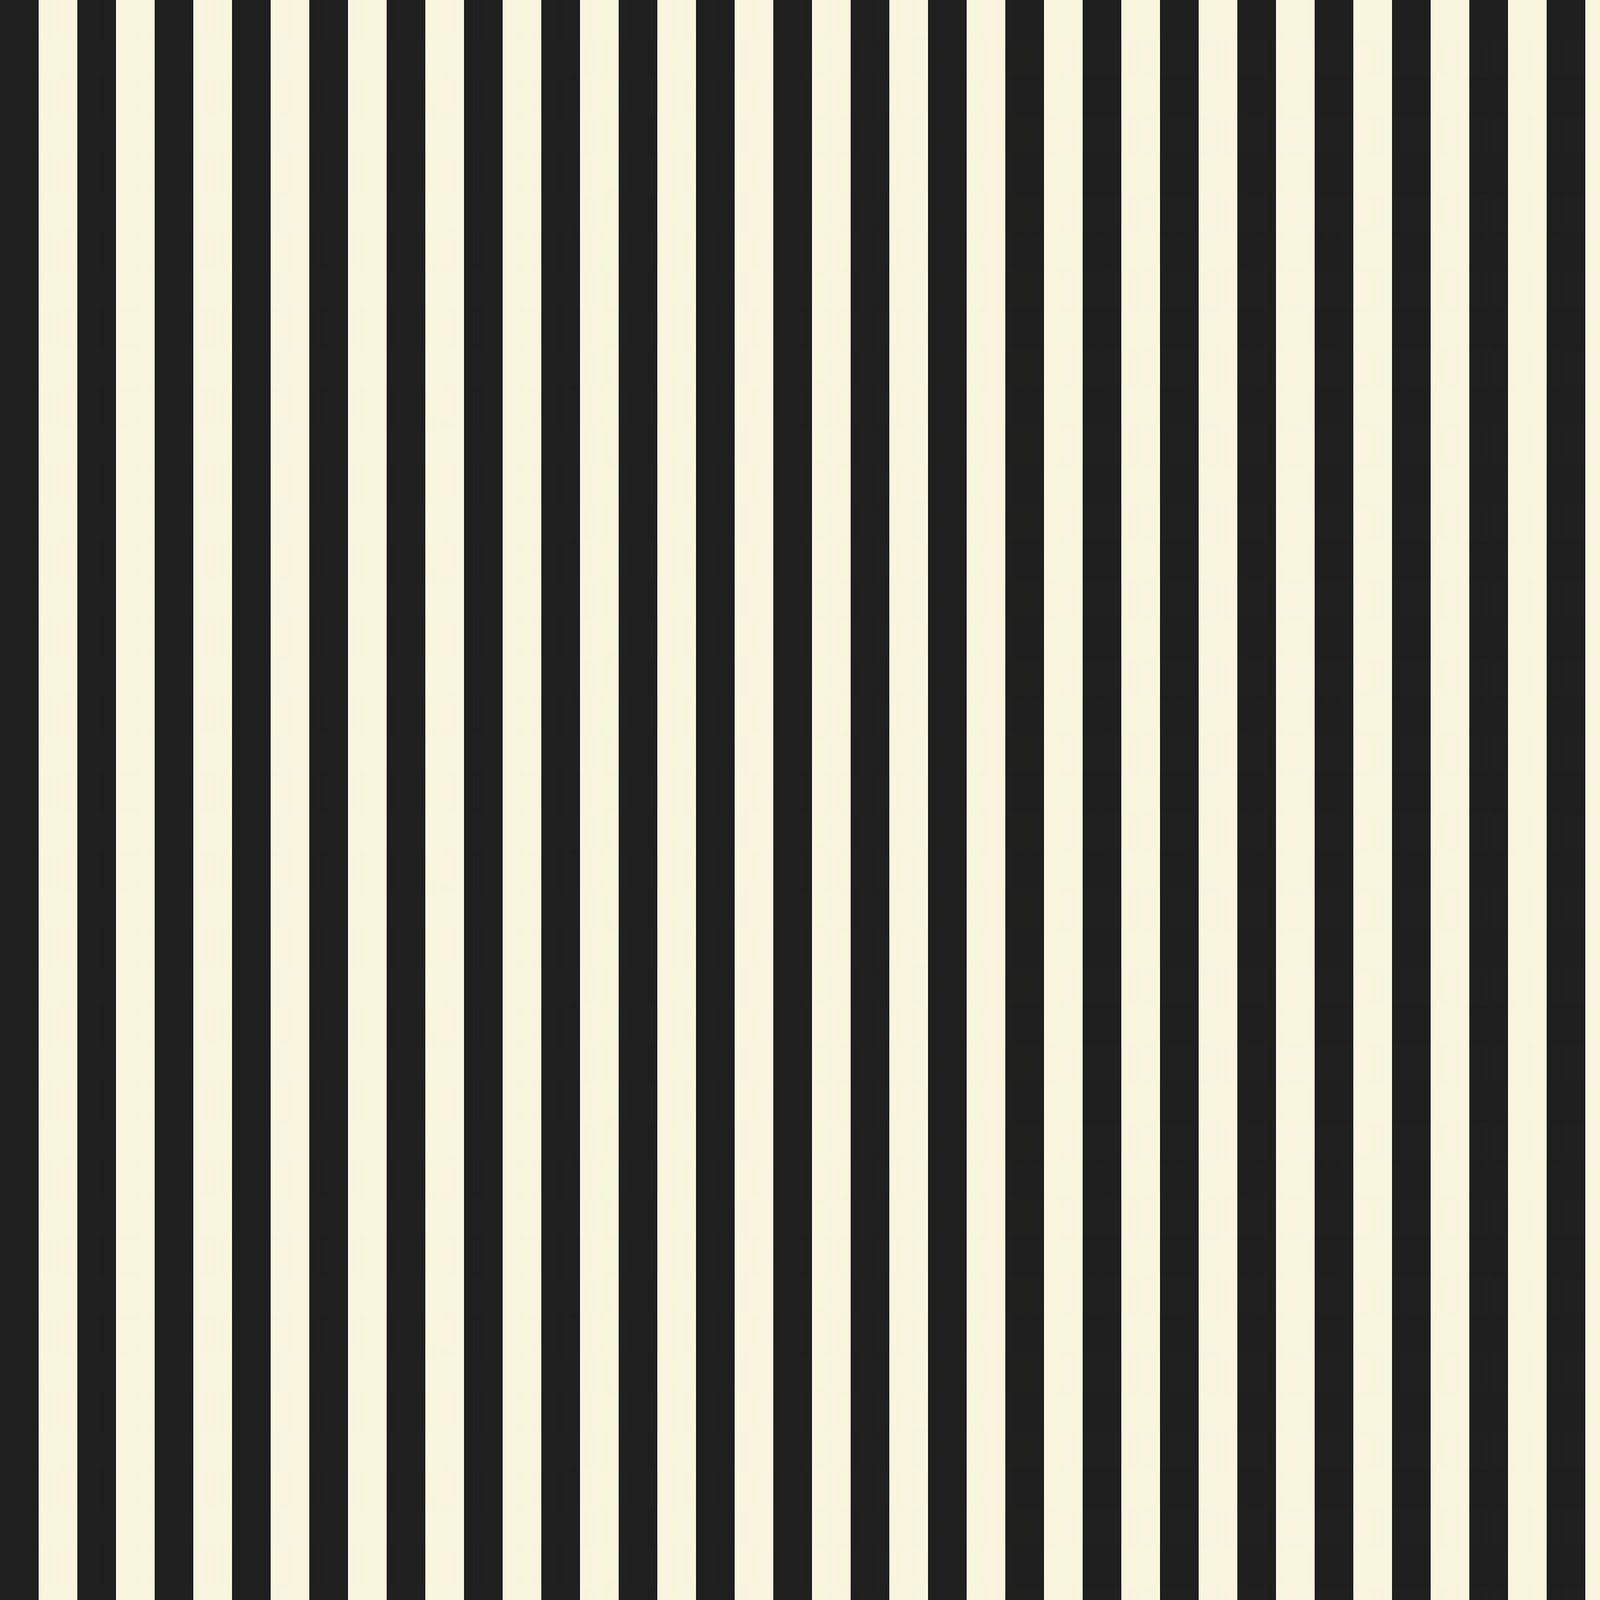 Black And White Stripes Wallpaper   Wallpapers High Definition 1600x1600